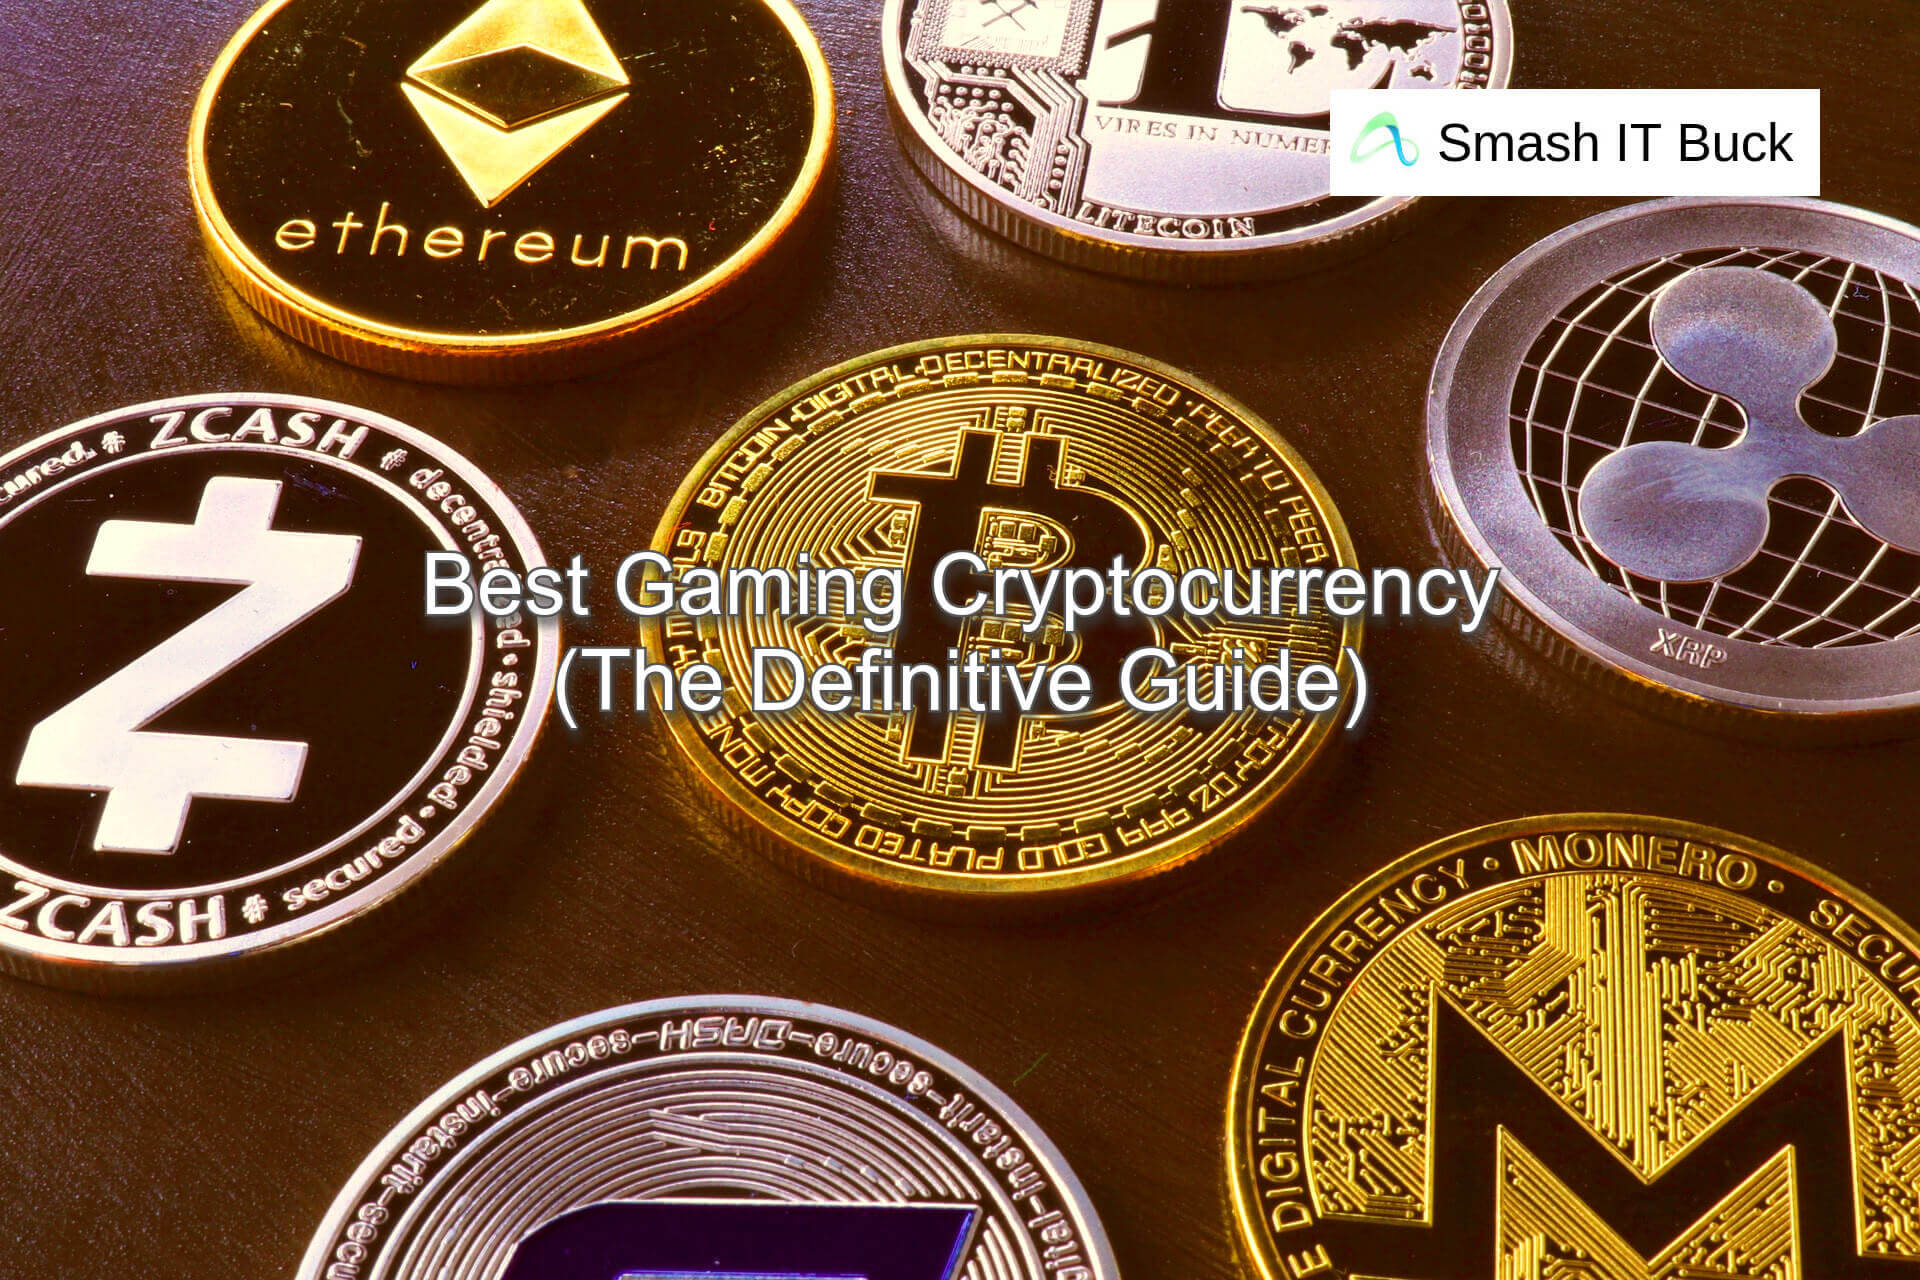 Best Gaming Cryptocurrency to Explore in 2021